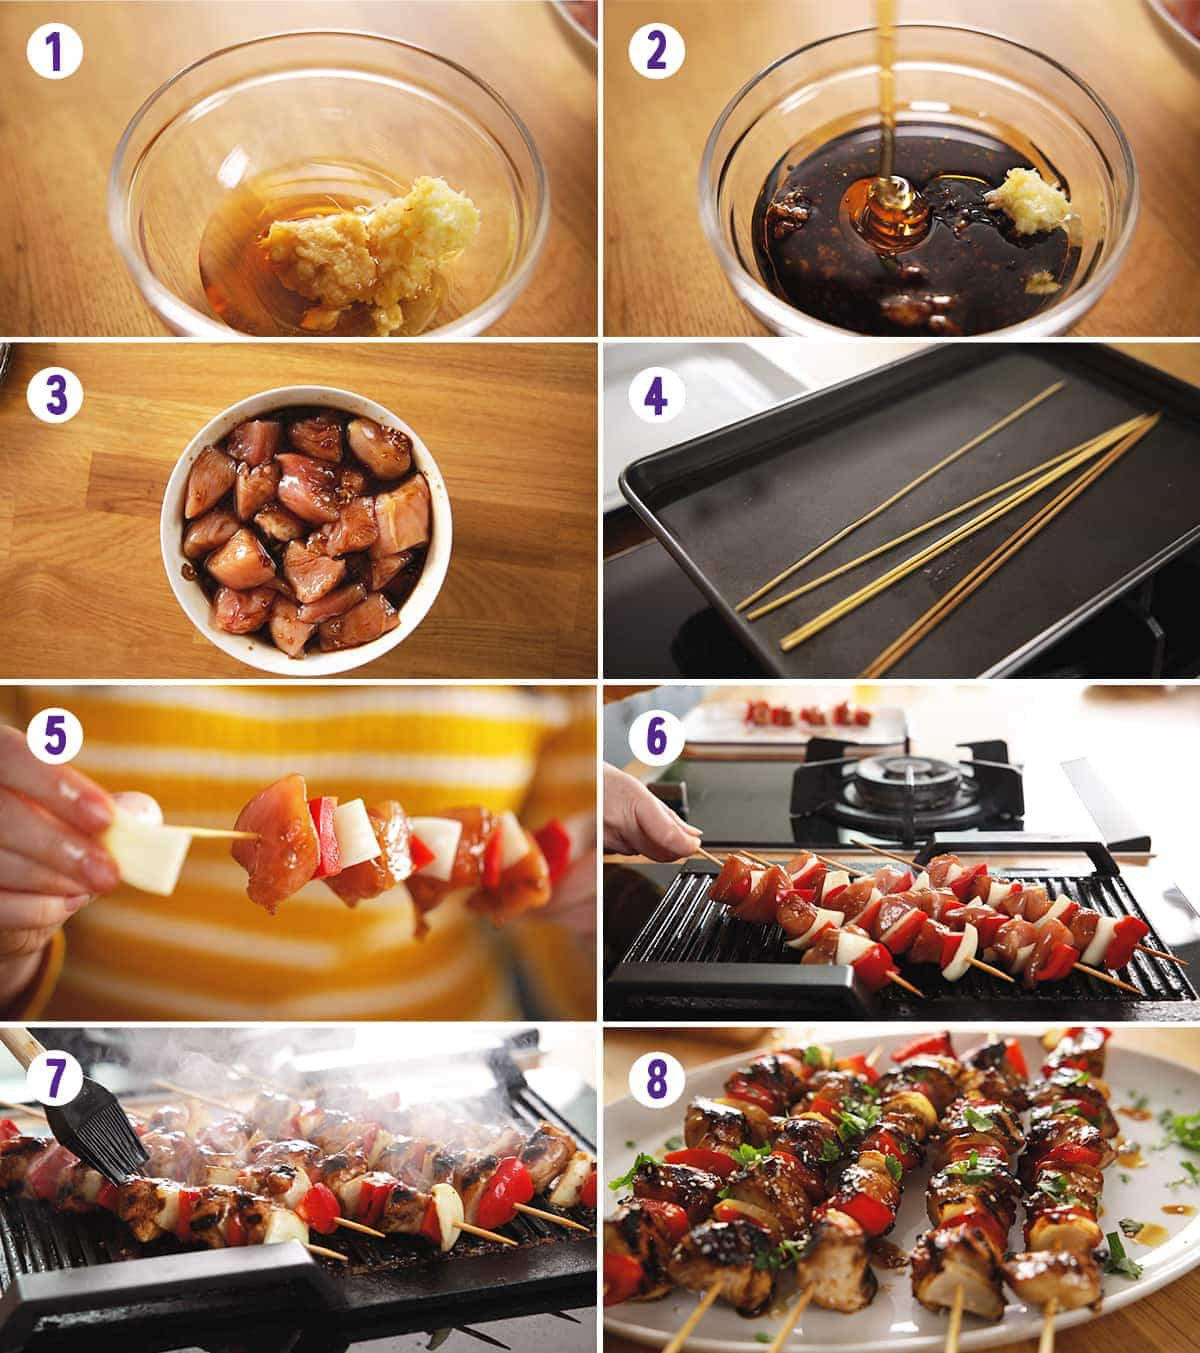 8 image collage showing how to make honey garlic chicken skewers